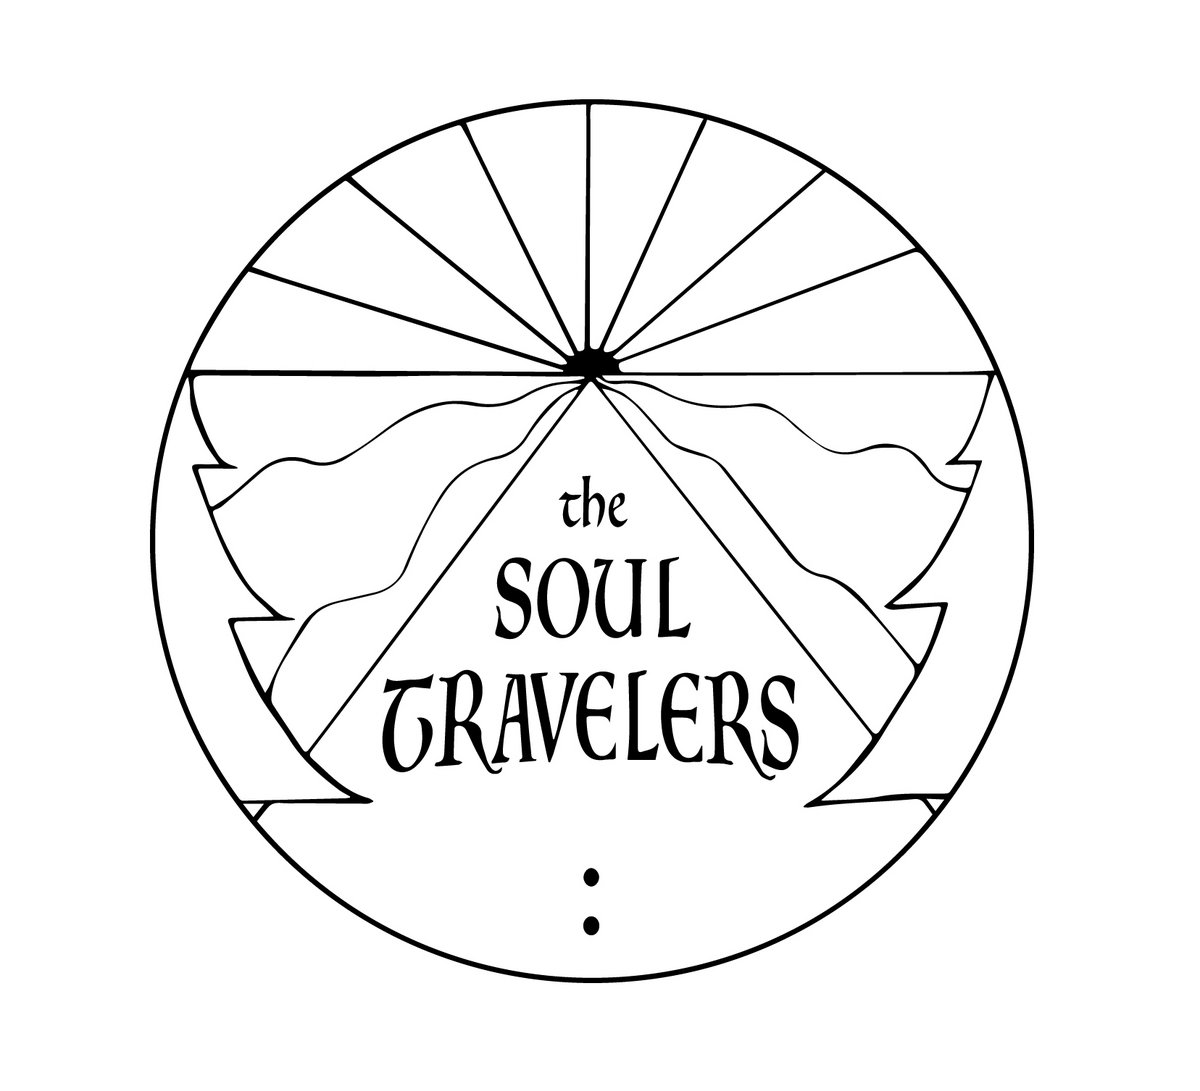 The soul travelers the soul travelers image malvernweather Image collections